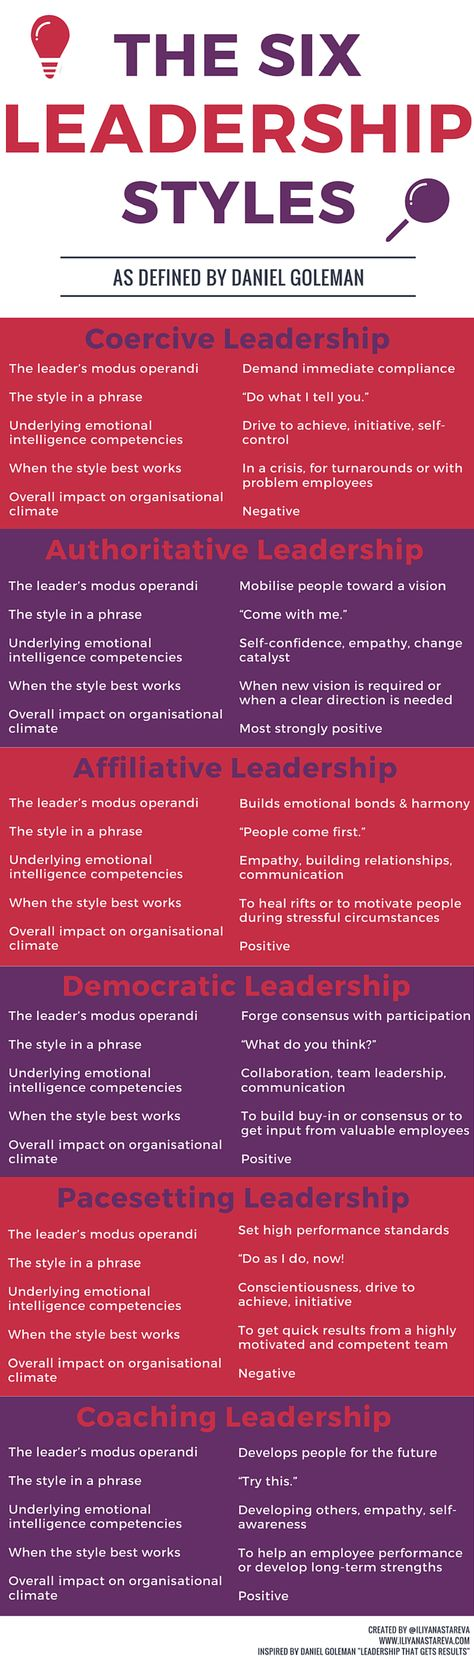 leadership and communication impact on achieving